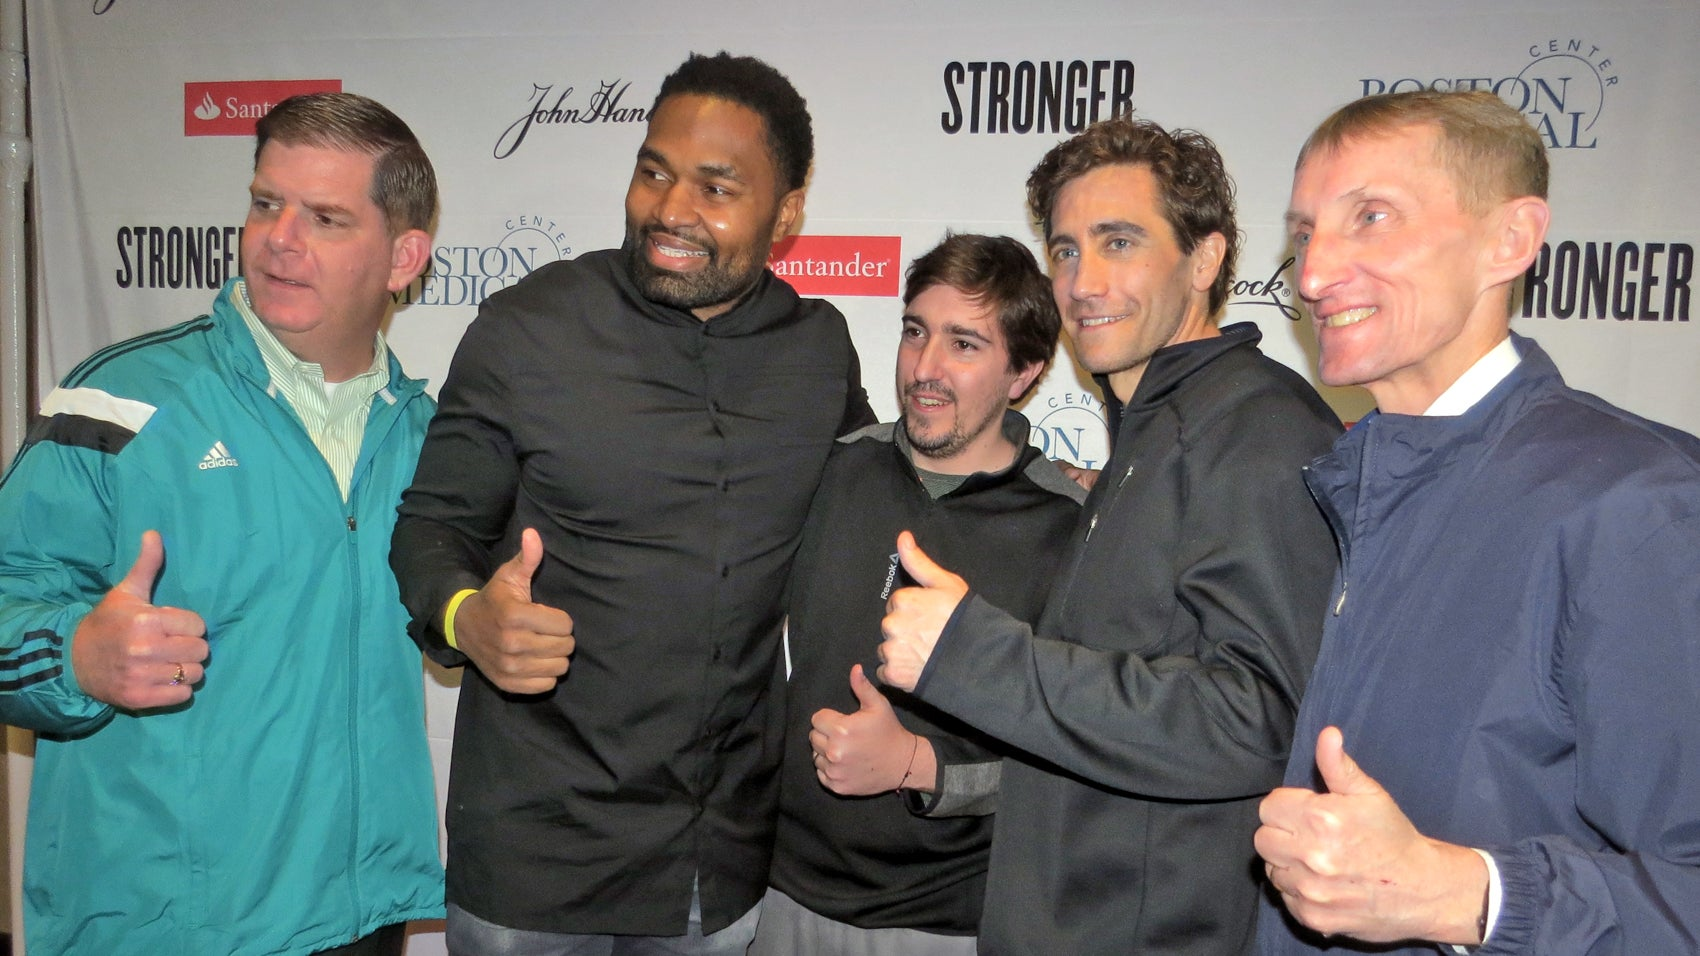 From left: Mayor Marty Walsh, retired New England Patriots player Jerod Mayo, Jeff Bauman, and Jake Gyllenhaal